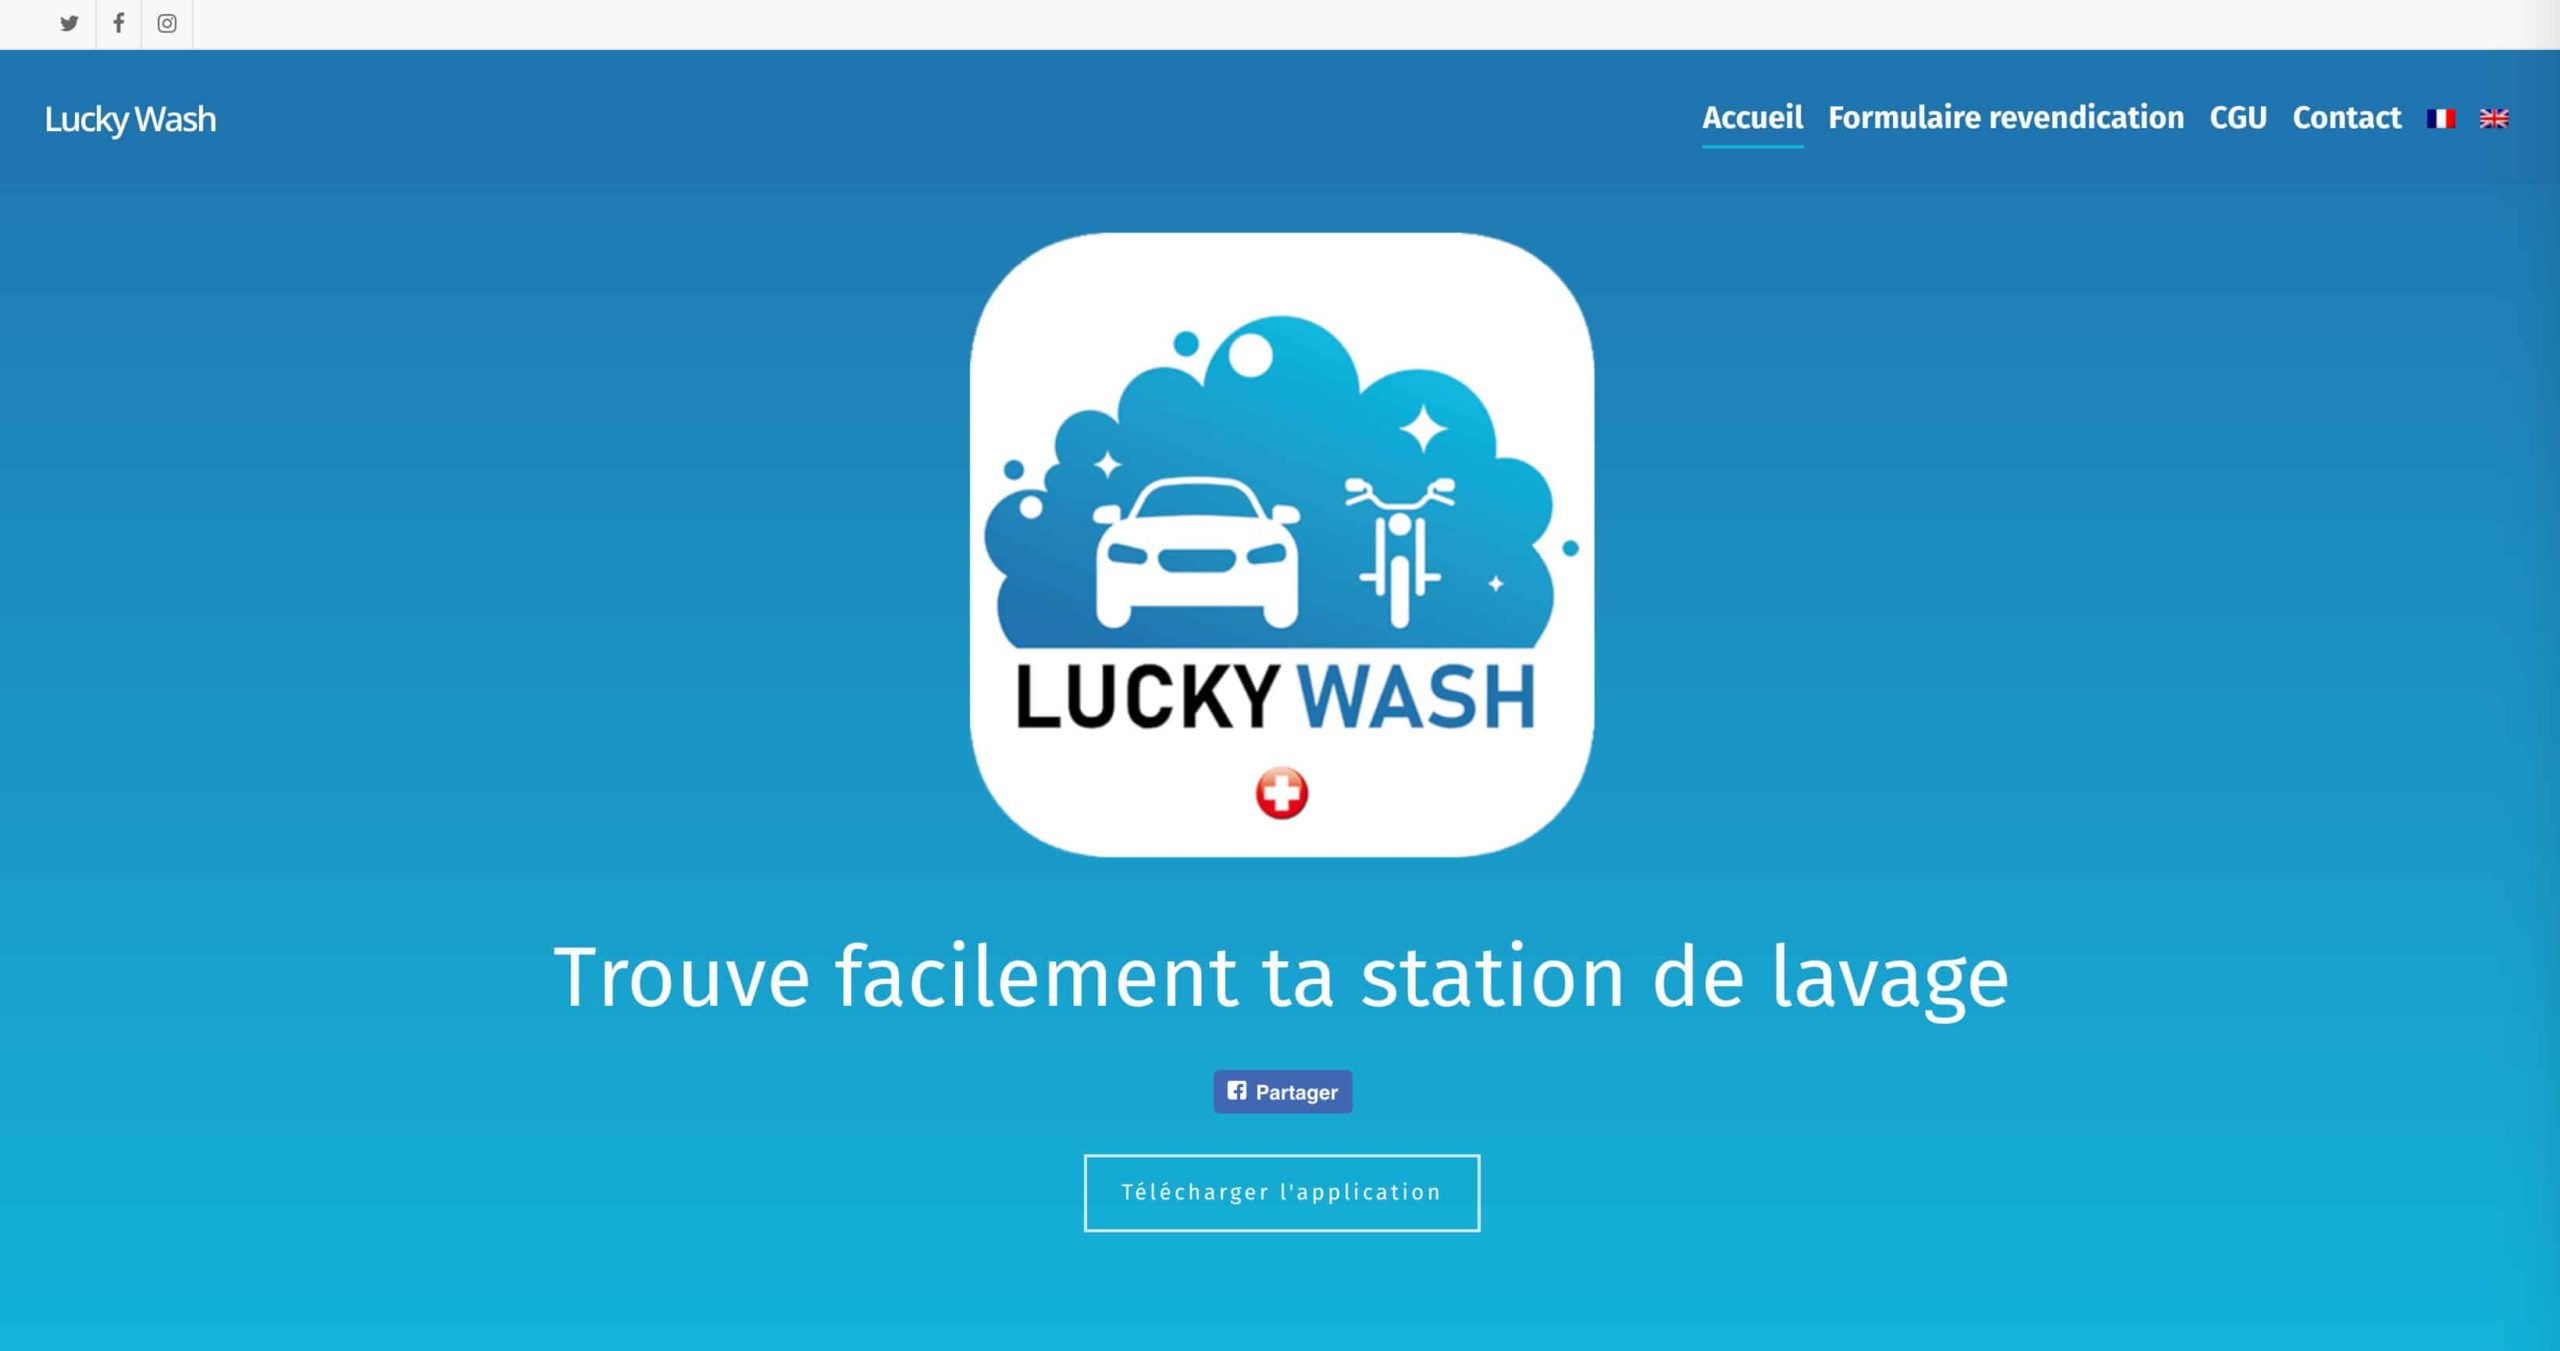 page accueil lucky wash 4